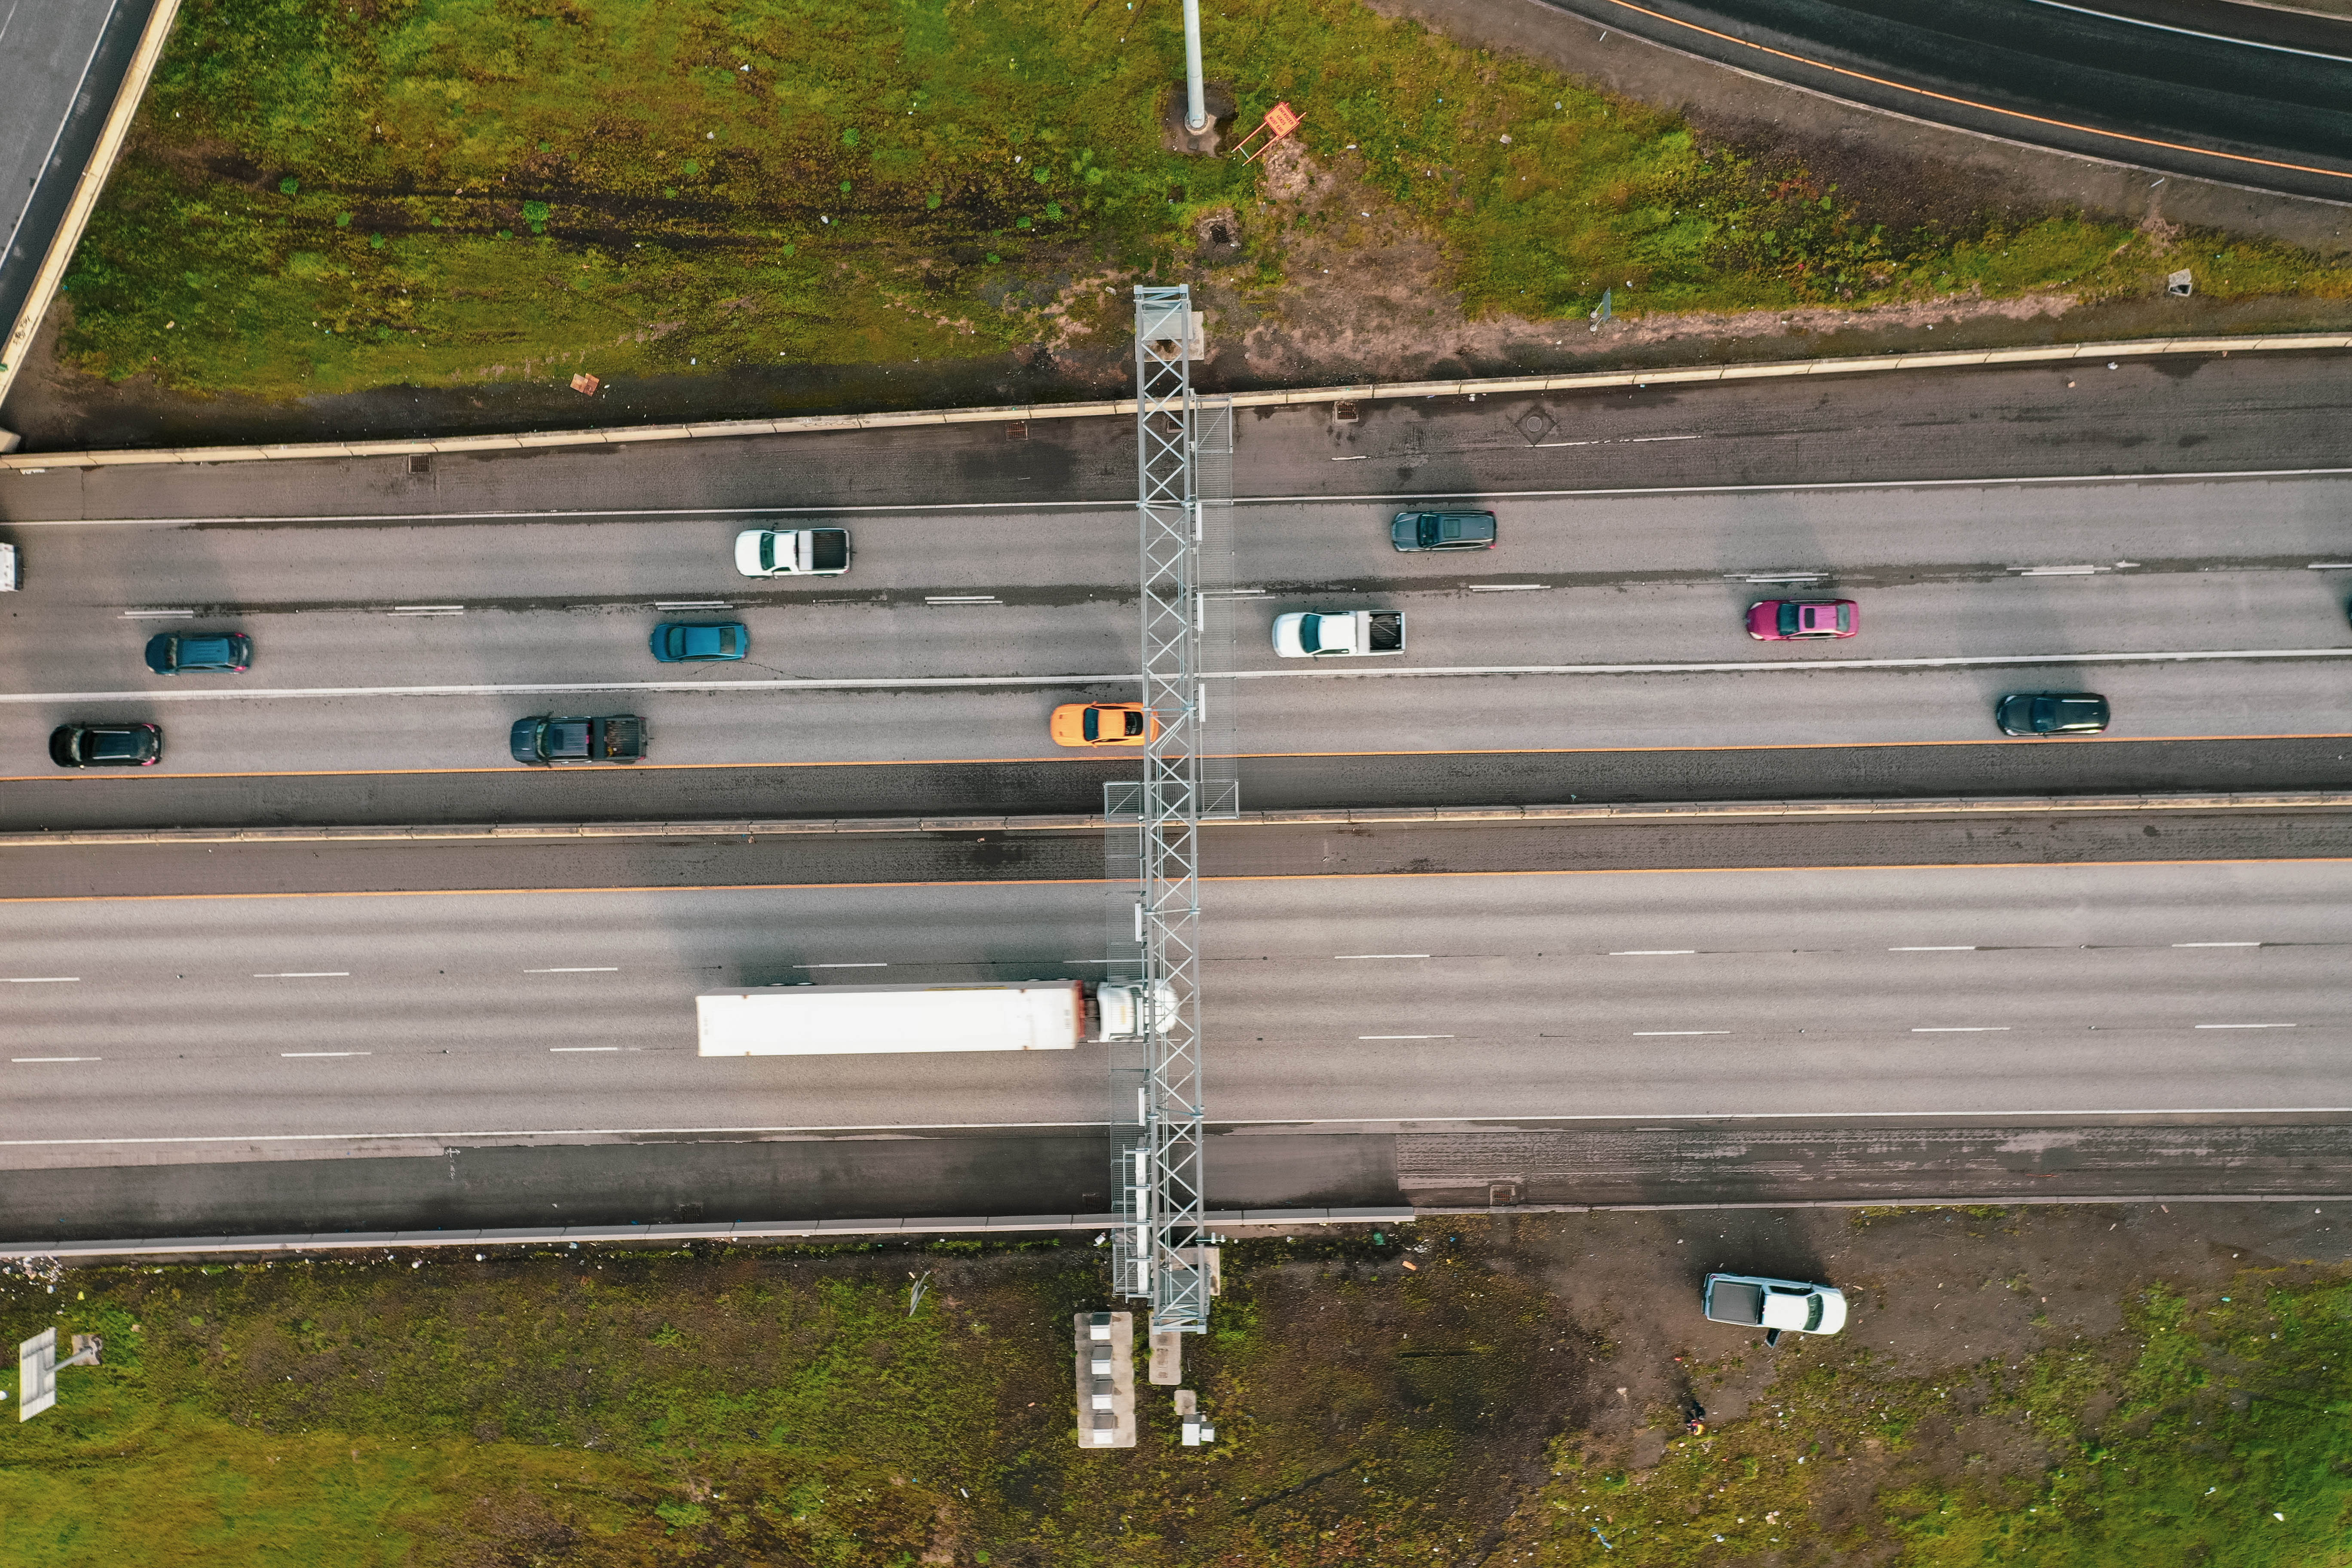 We don't just wire and illuminate traffic structures, we assemble the structures and crane them in place on major highways. If you have a high traffic, challenging site that needs highway communication improvement, you've come to the right place.